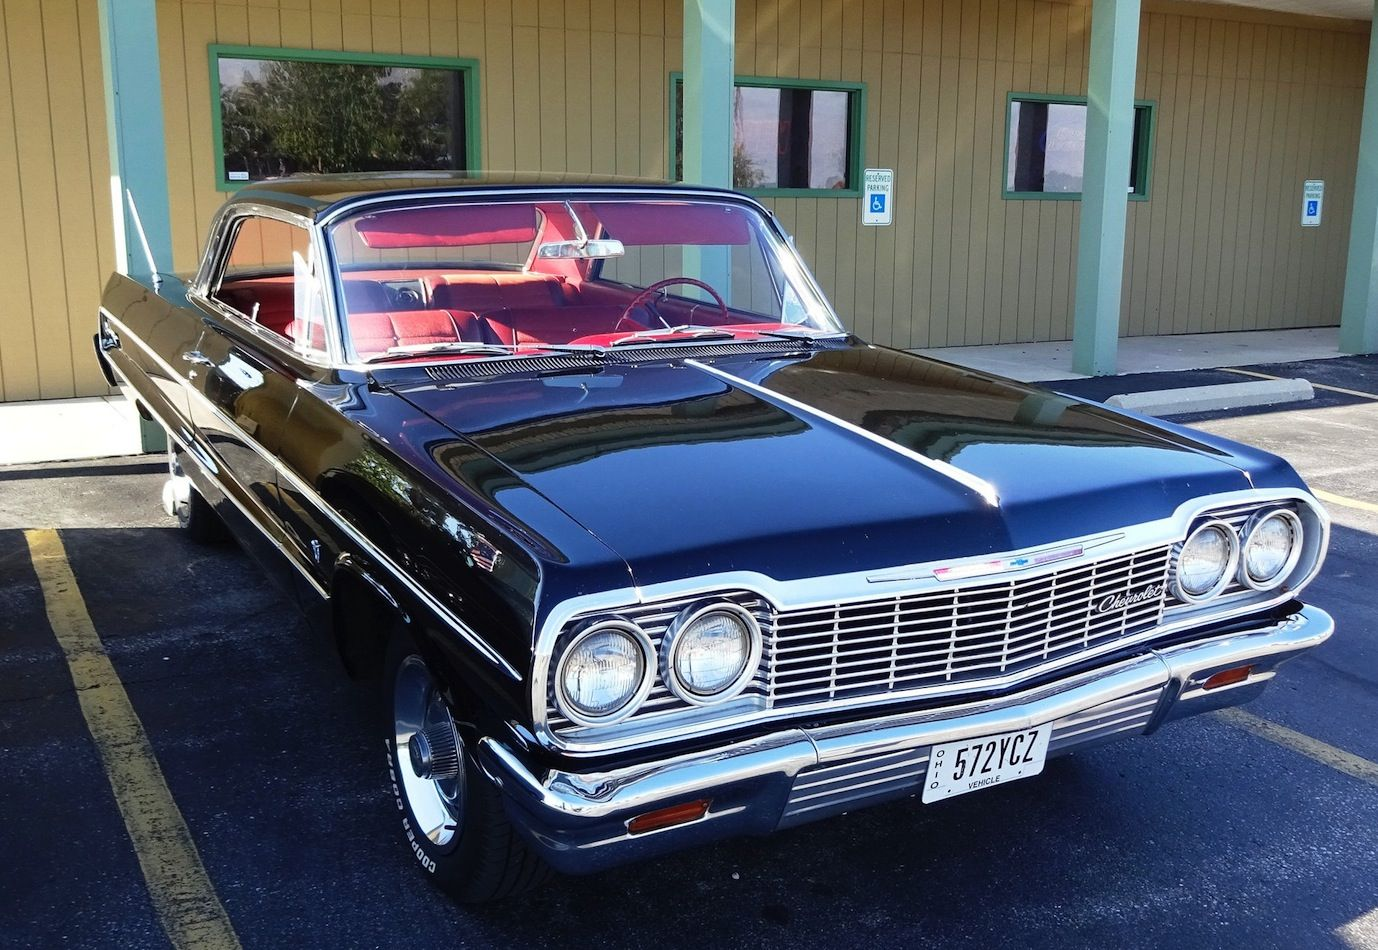 1964 Chevrolet Bel Air 2 Door Post Conversion Impala Daily Driver 62 63 Biscayne For Sale Photos Technical Specifications D Impala Chevrolet Bel Air Bel Air